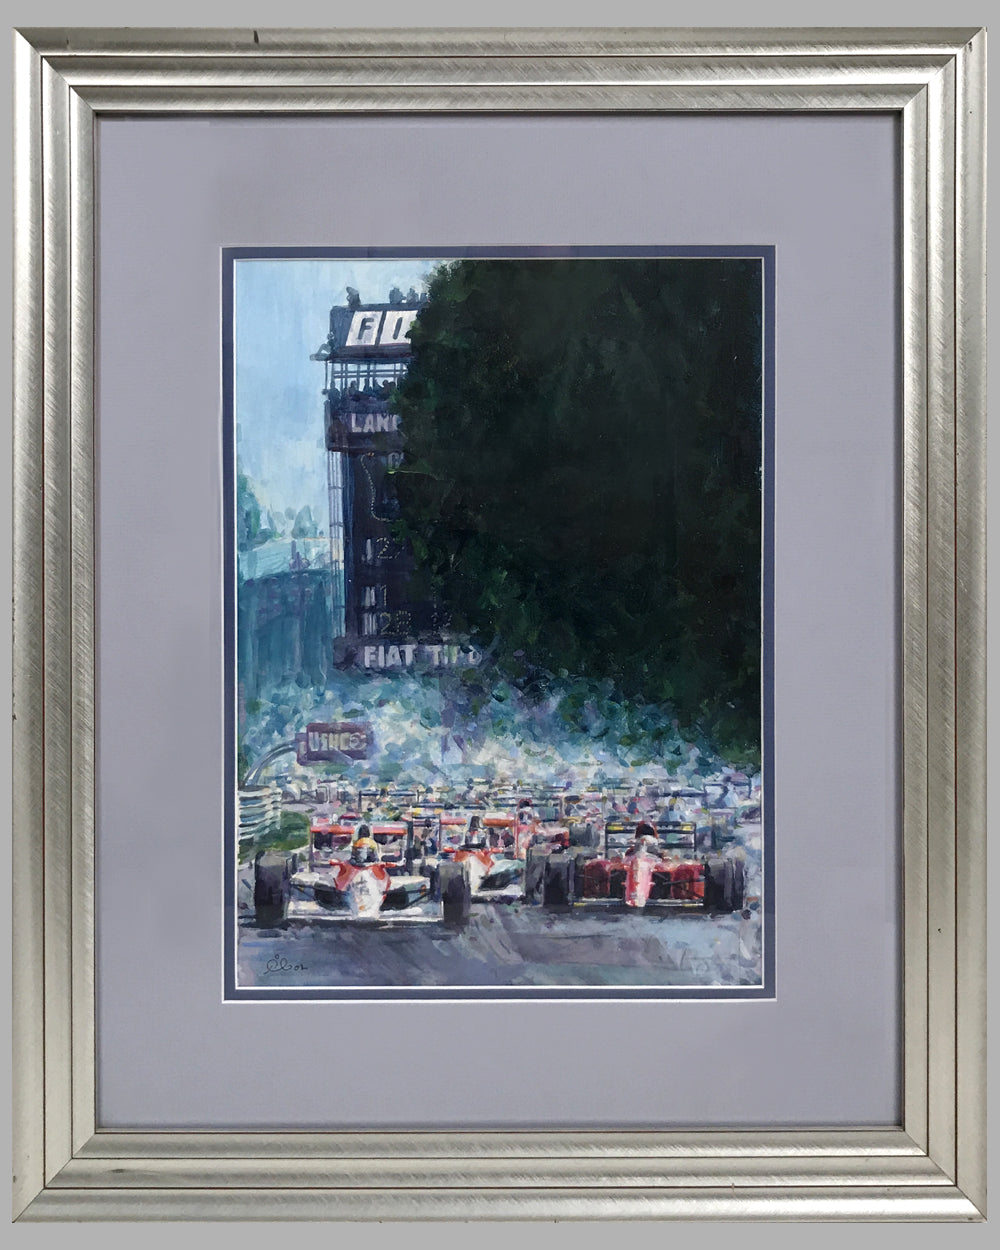 Monza '90 Starts painting by Rob Ijbema